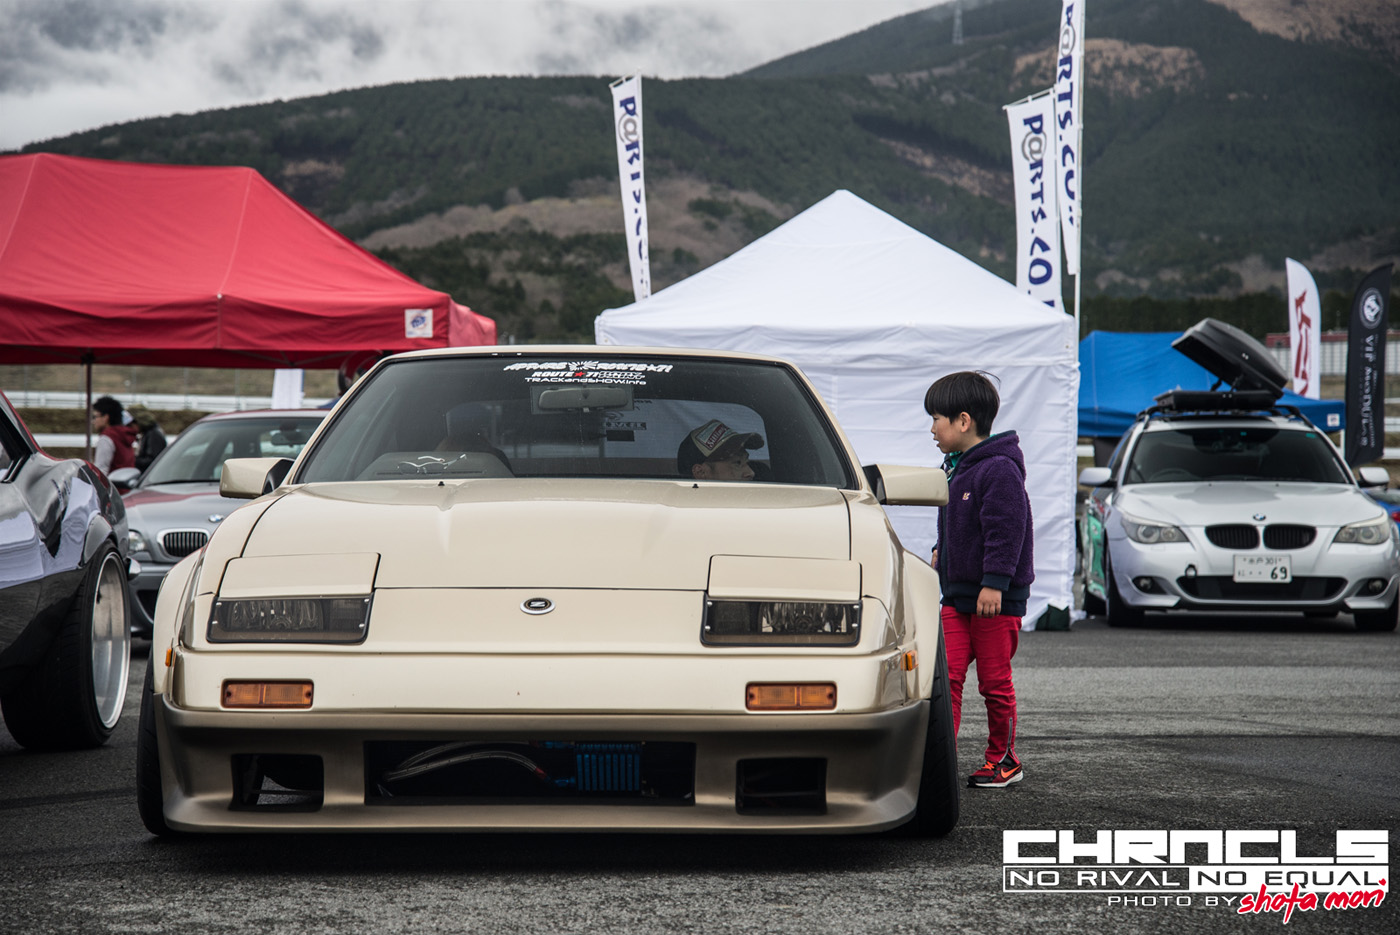 Track And Show Japan 2015 Coverage…Part 3 of 3…